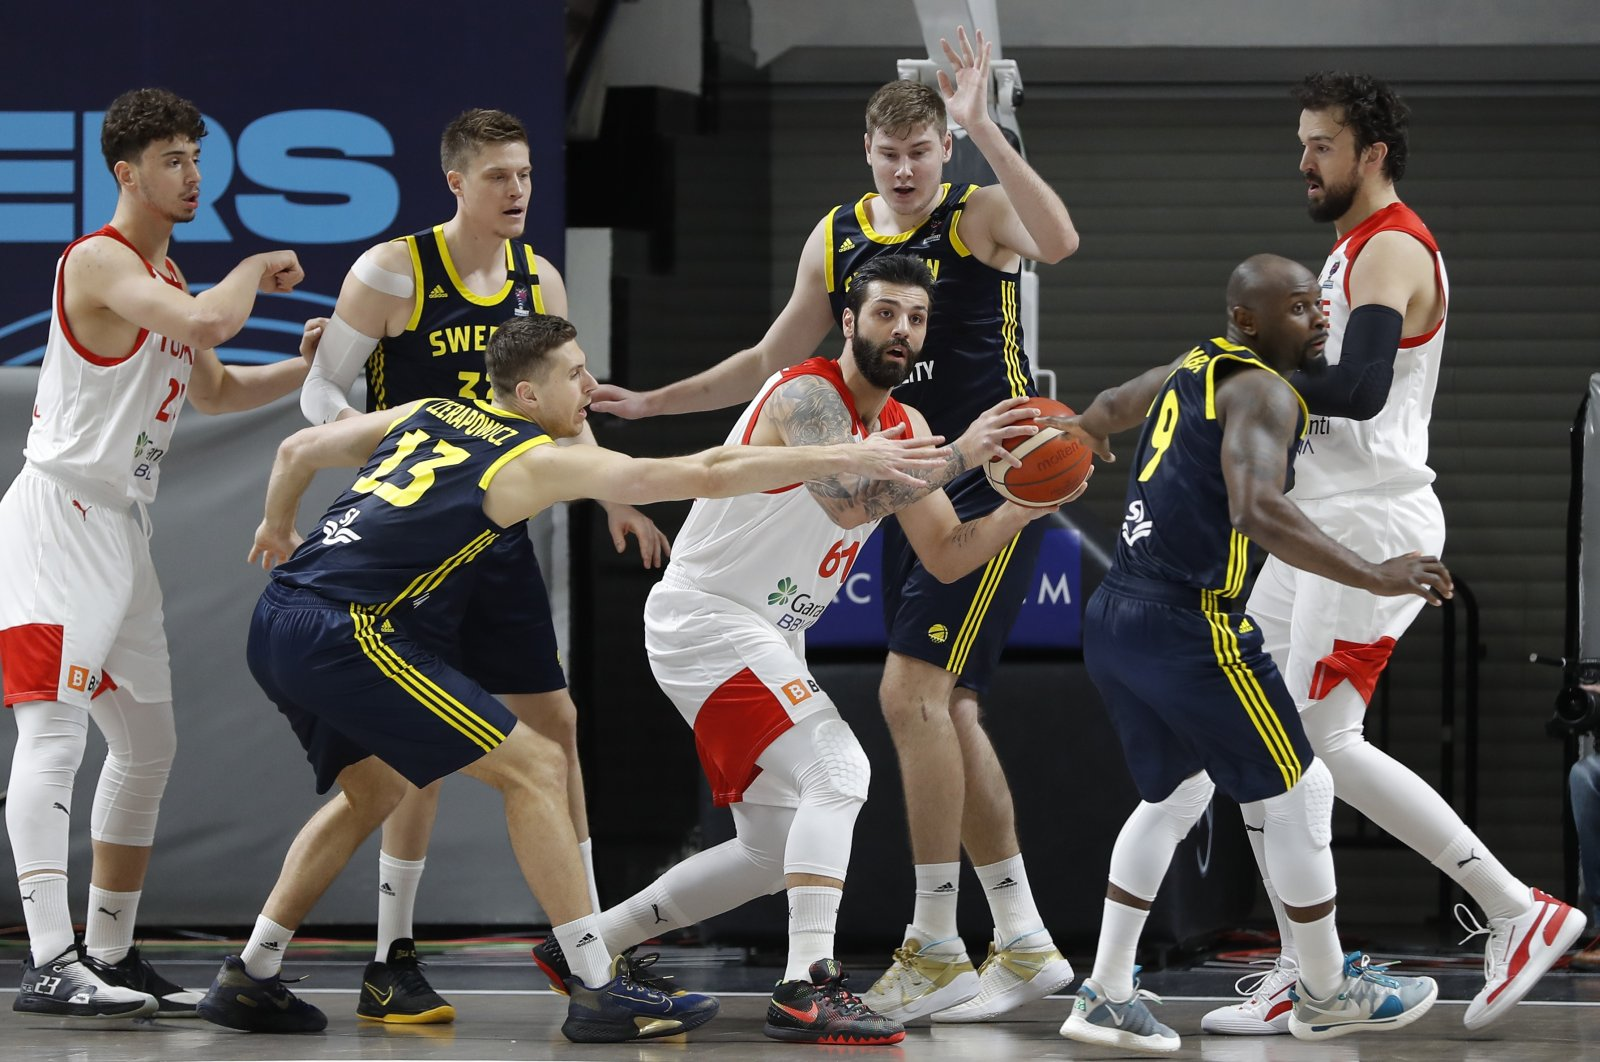 Turkey's and Sweden's players fight during a EuroBasket 2022 Group D qualifier basketball match between Turkey and Sweden, in Istanbul, Feb. 20, 2021. (AP Photo)